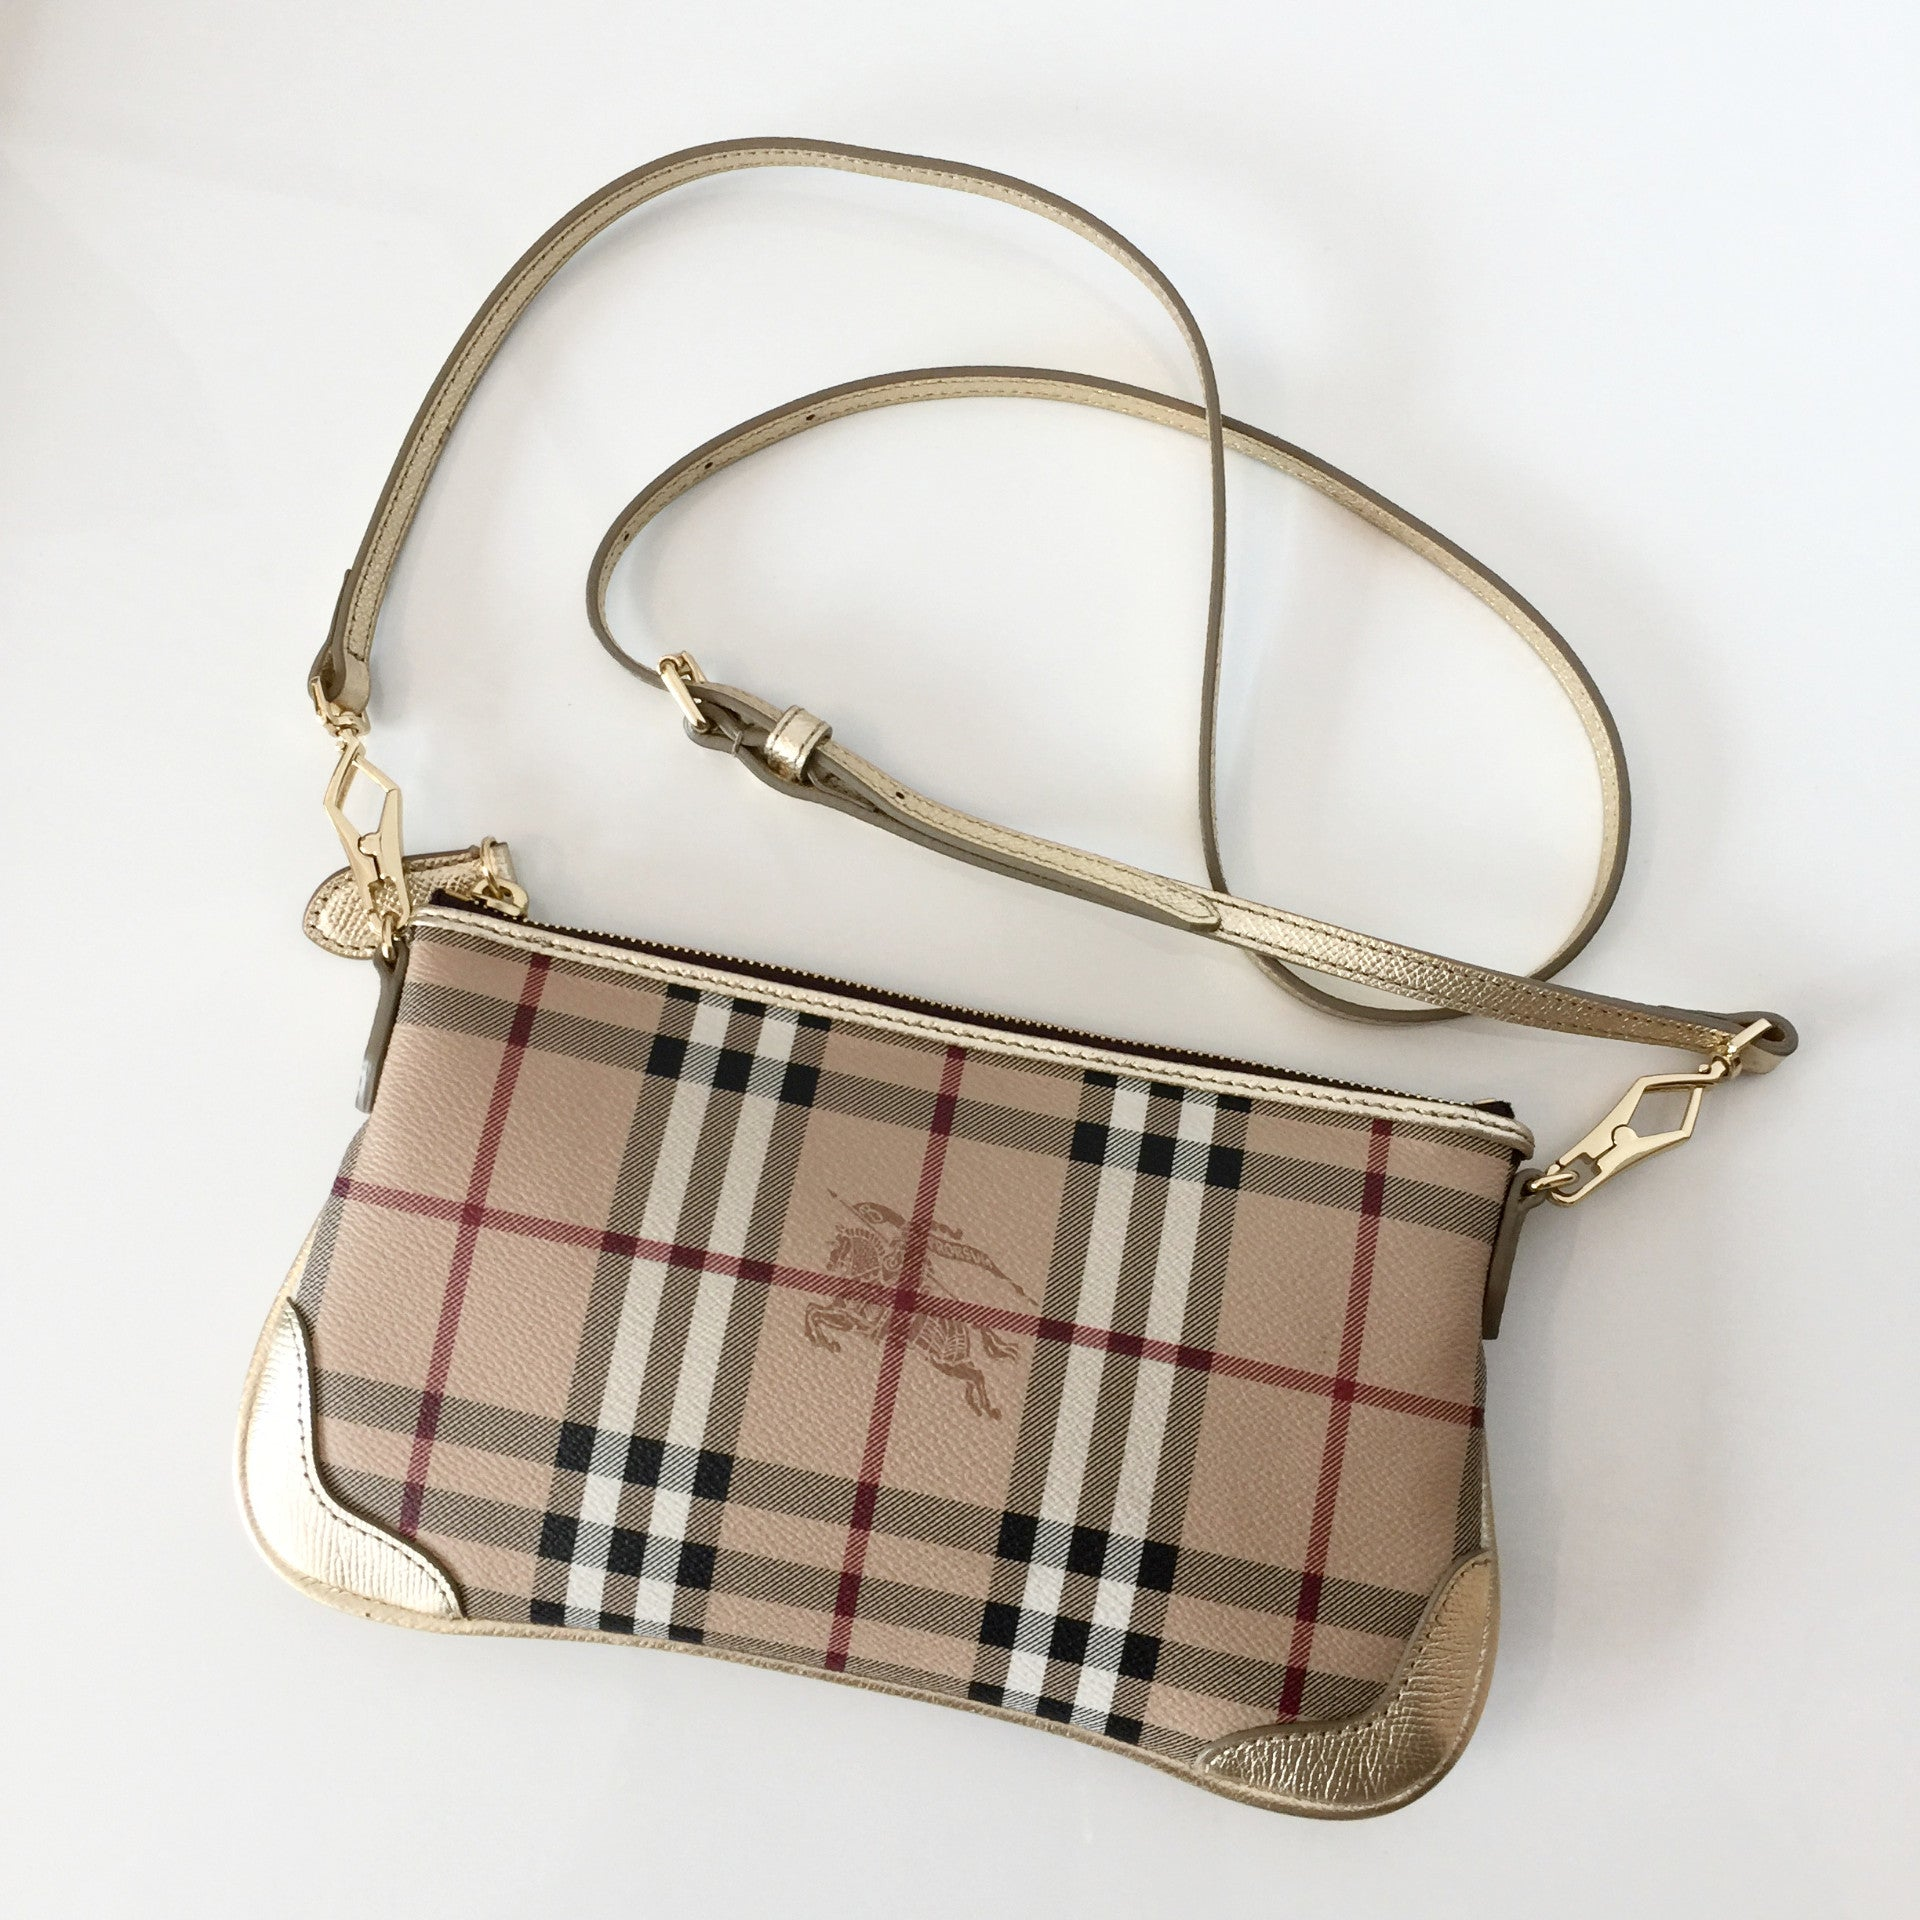 Authentic BURBERRY Haymarket Small Crossbody